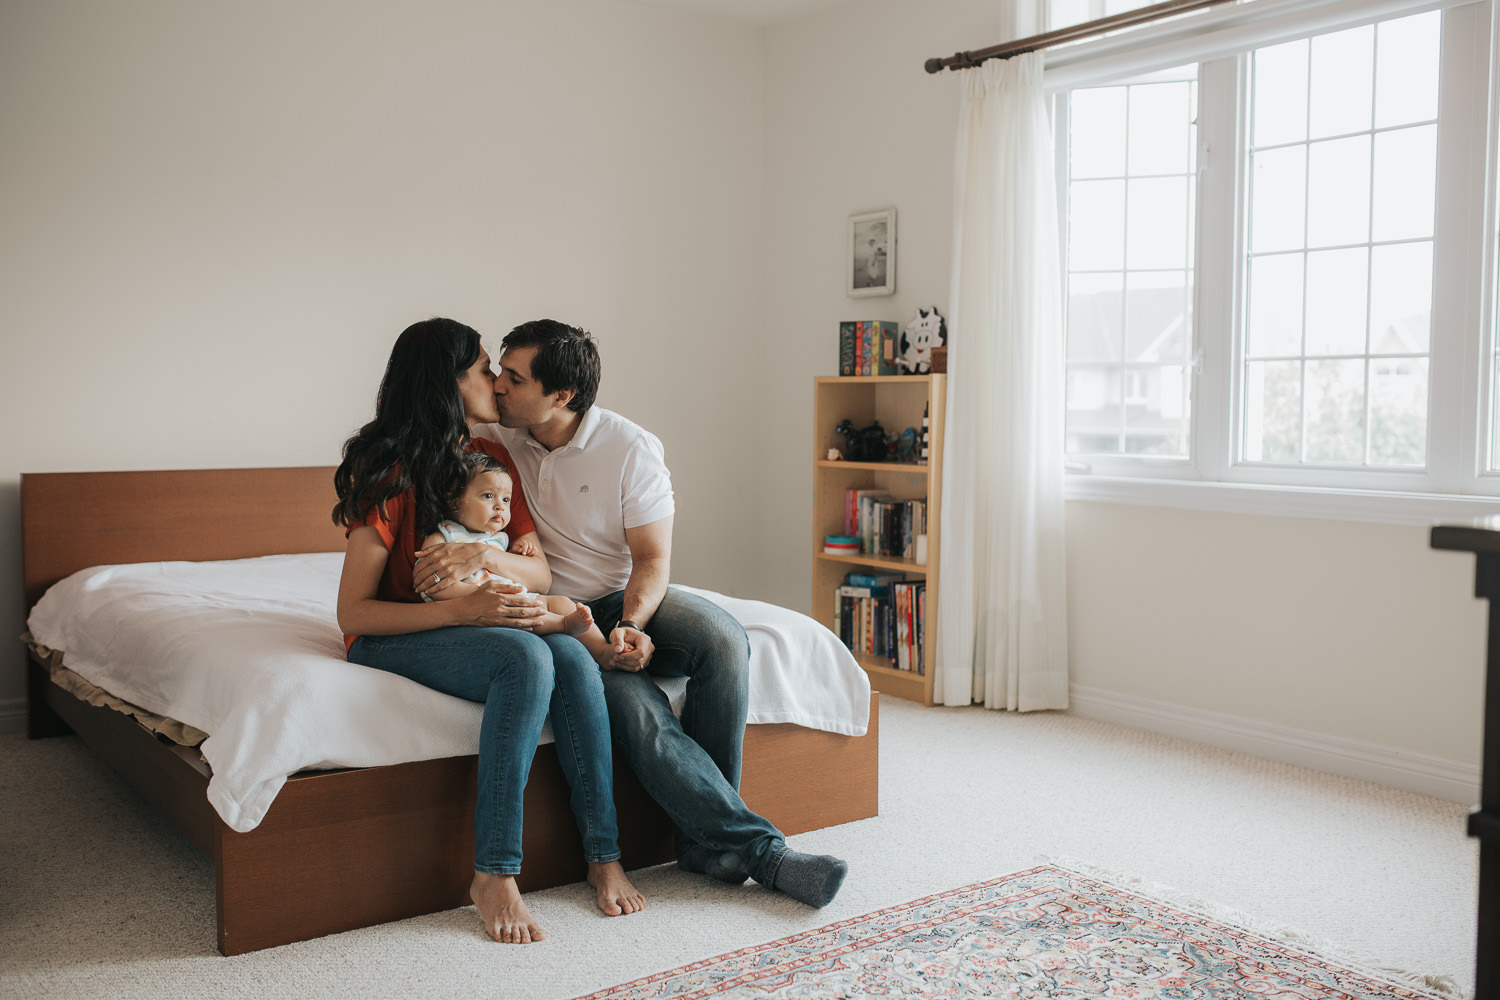 family of 3 sitting on bed, mom holding 8 month old baby boy in lap, husband and wife kissing - Stouffville Lifestyle Photos